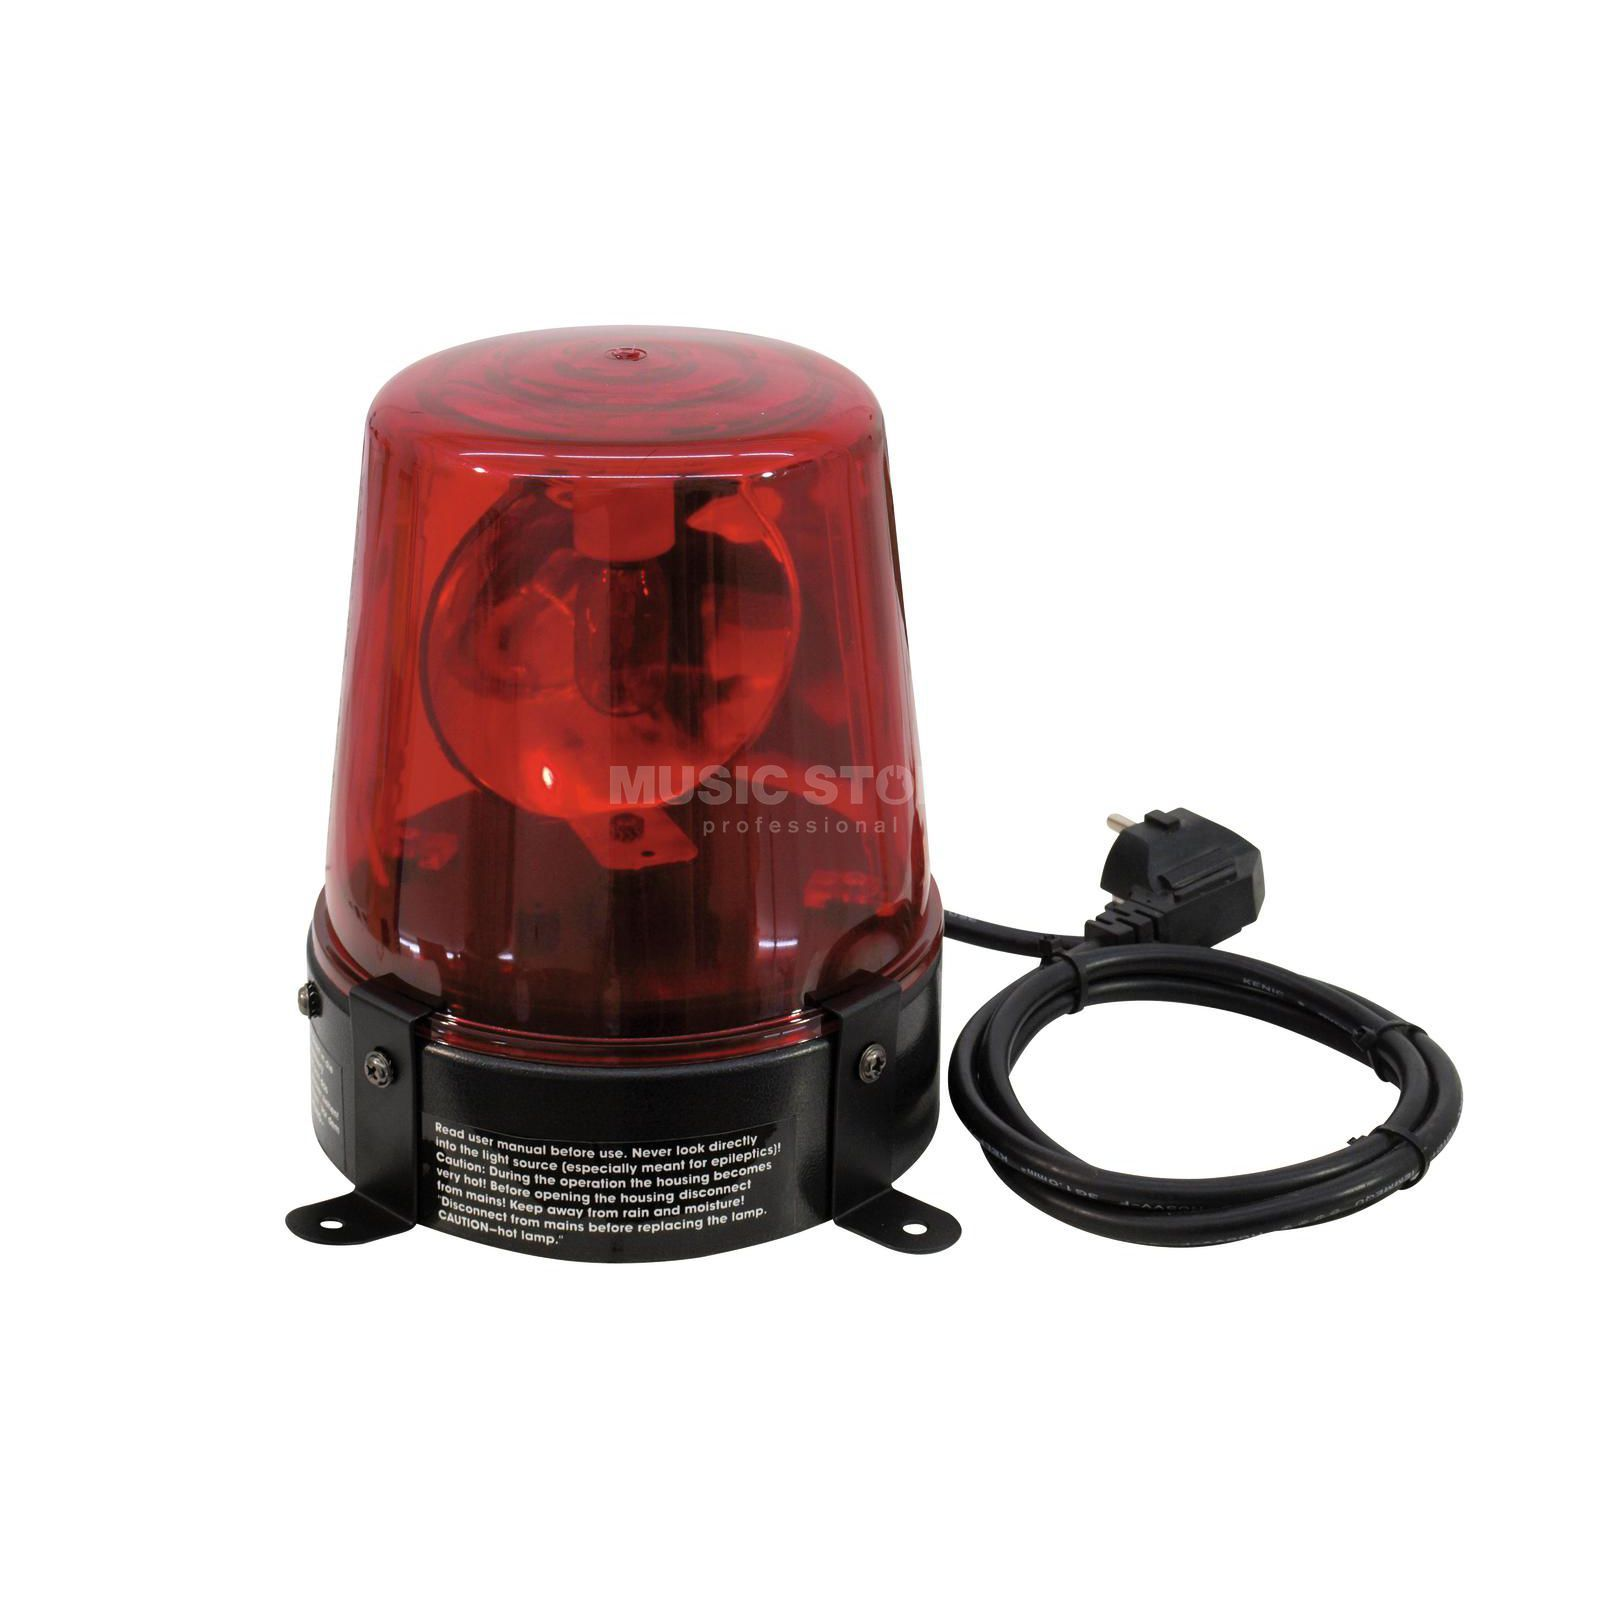 Eurolite Police Light 15 W RED incl. Cable & Plug Produktbillede